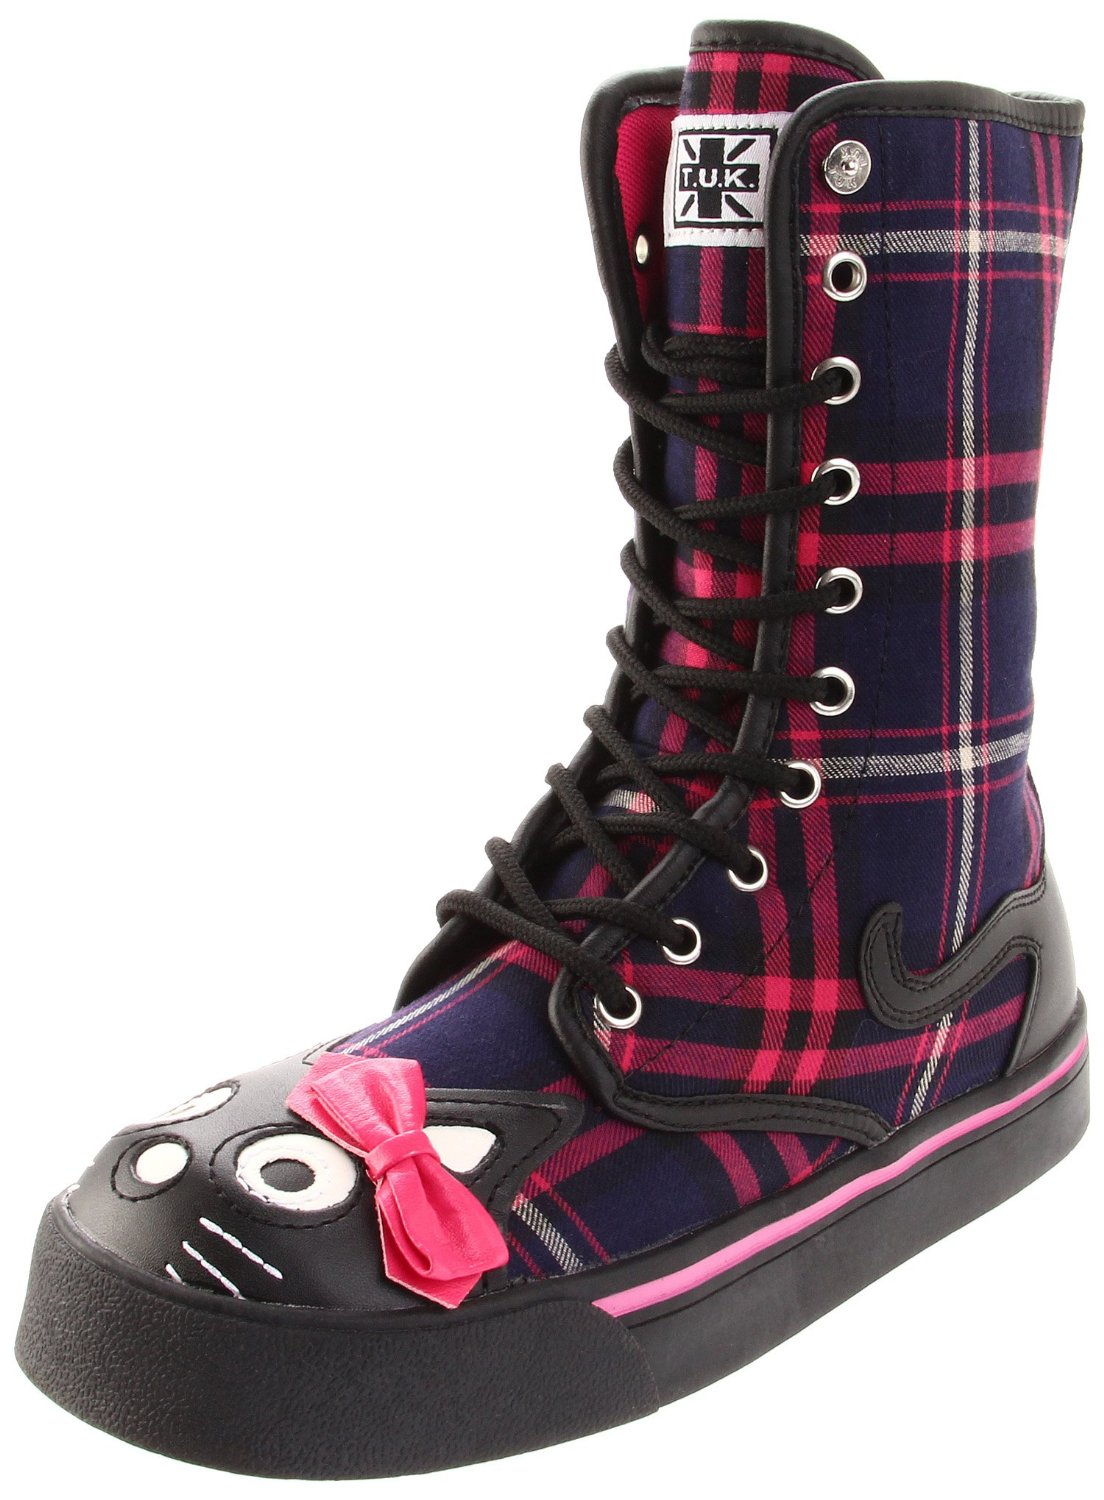 Vegan cat face boots